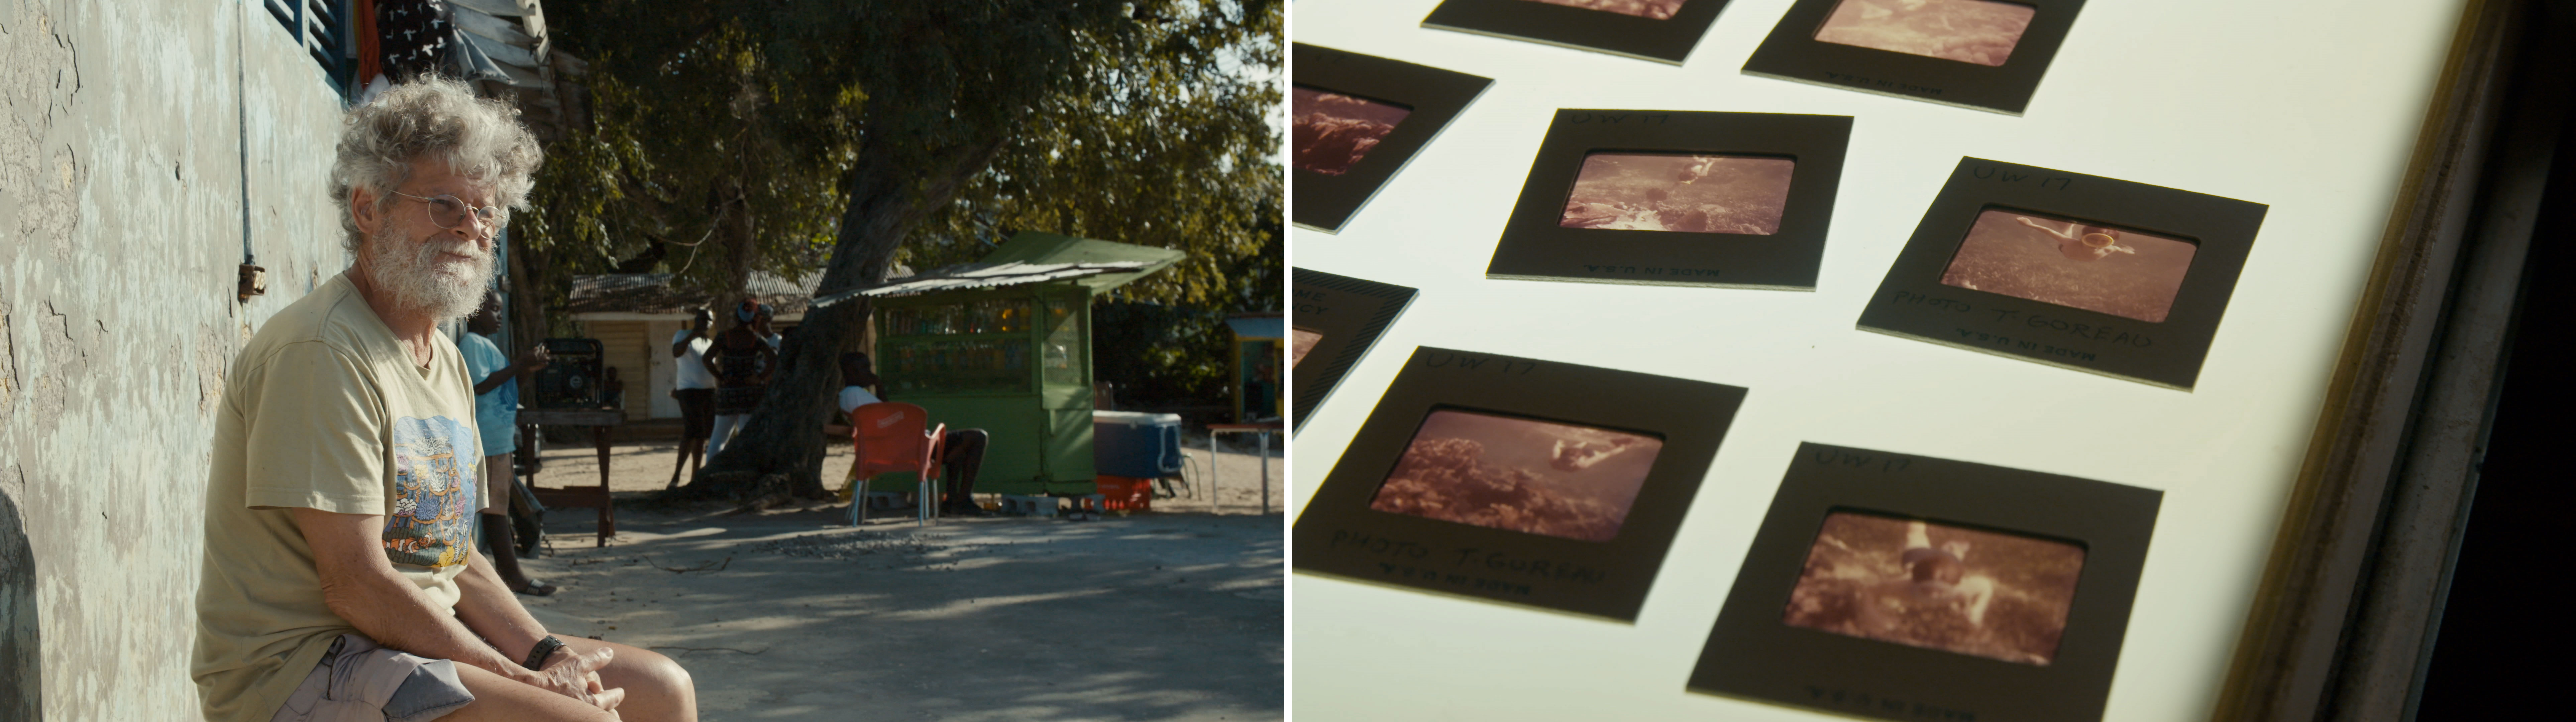 "Stills from the film ""Coral Ghosts"" show Tom Goreau sitting on an outdoor bench and slides on a light table"